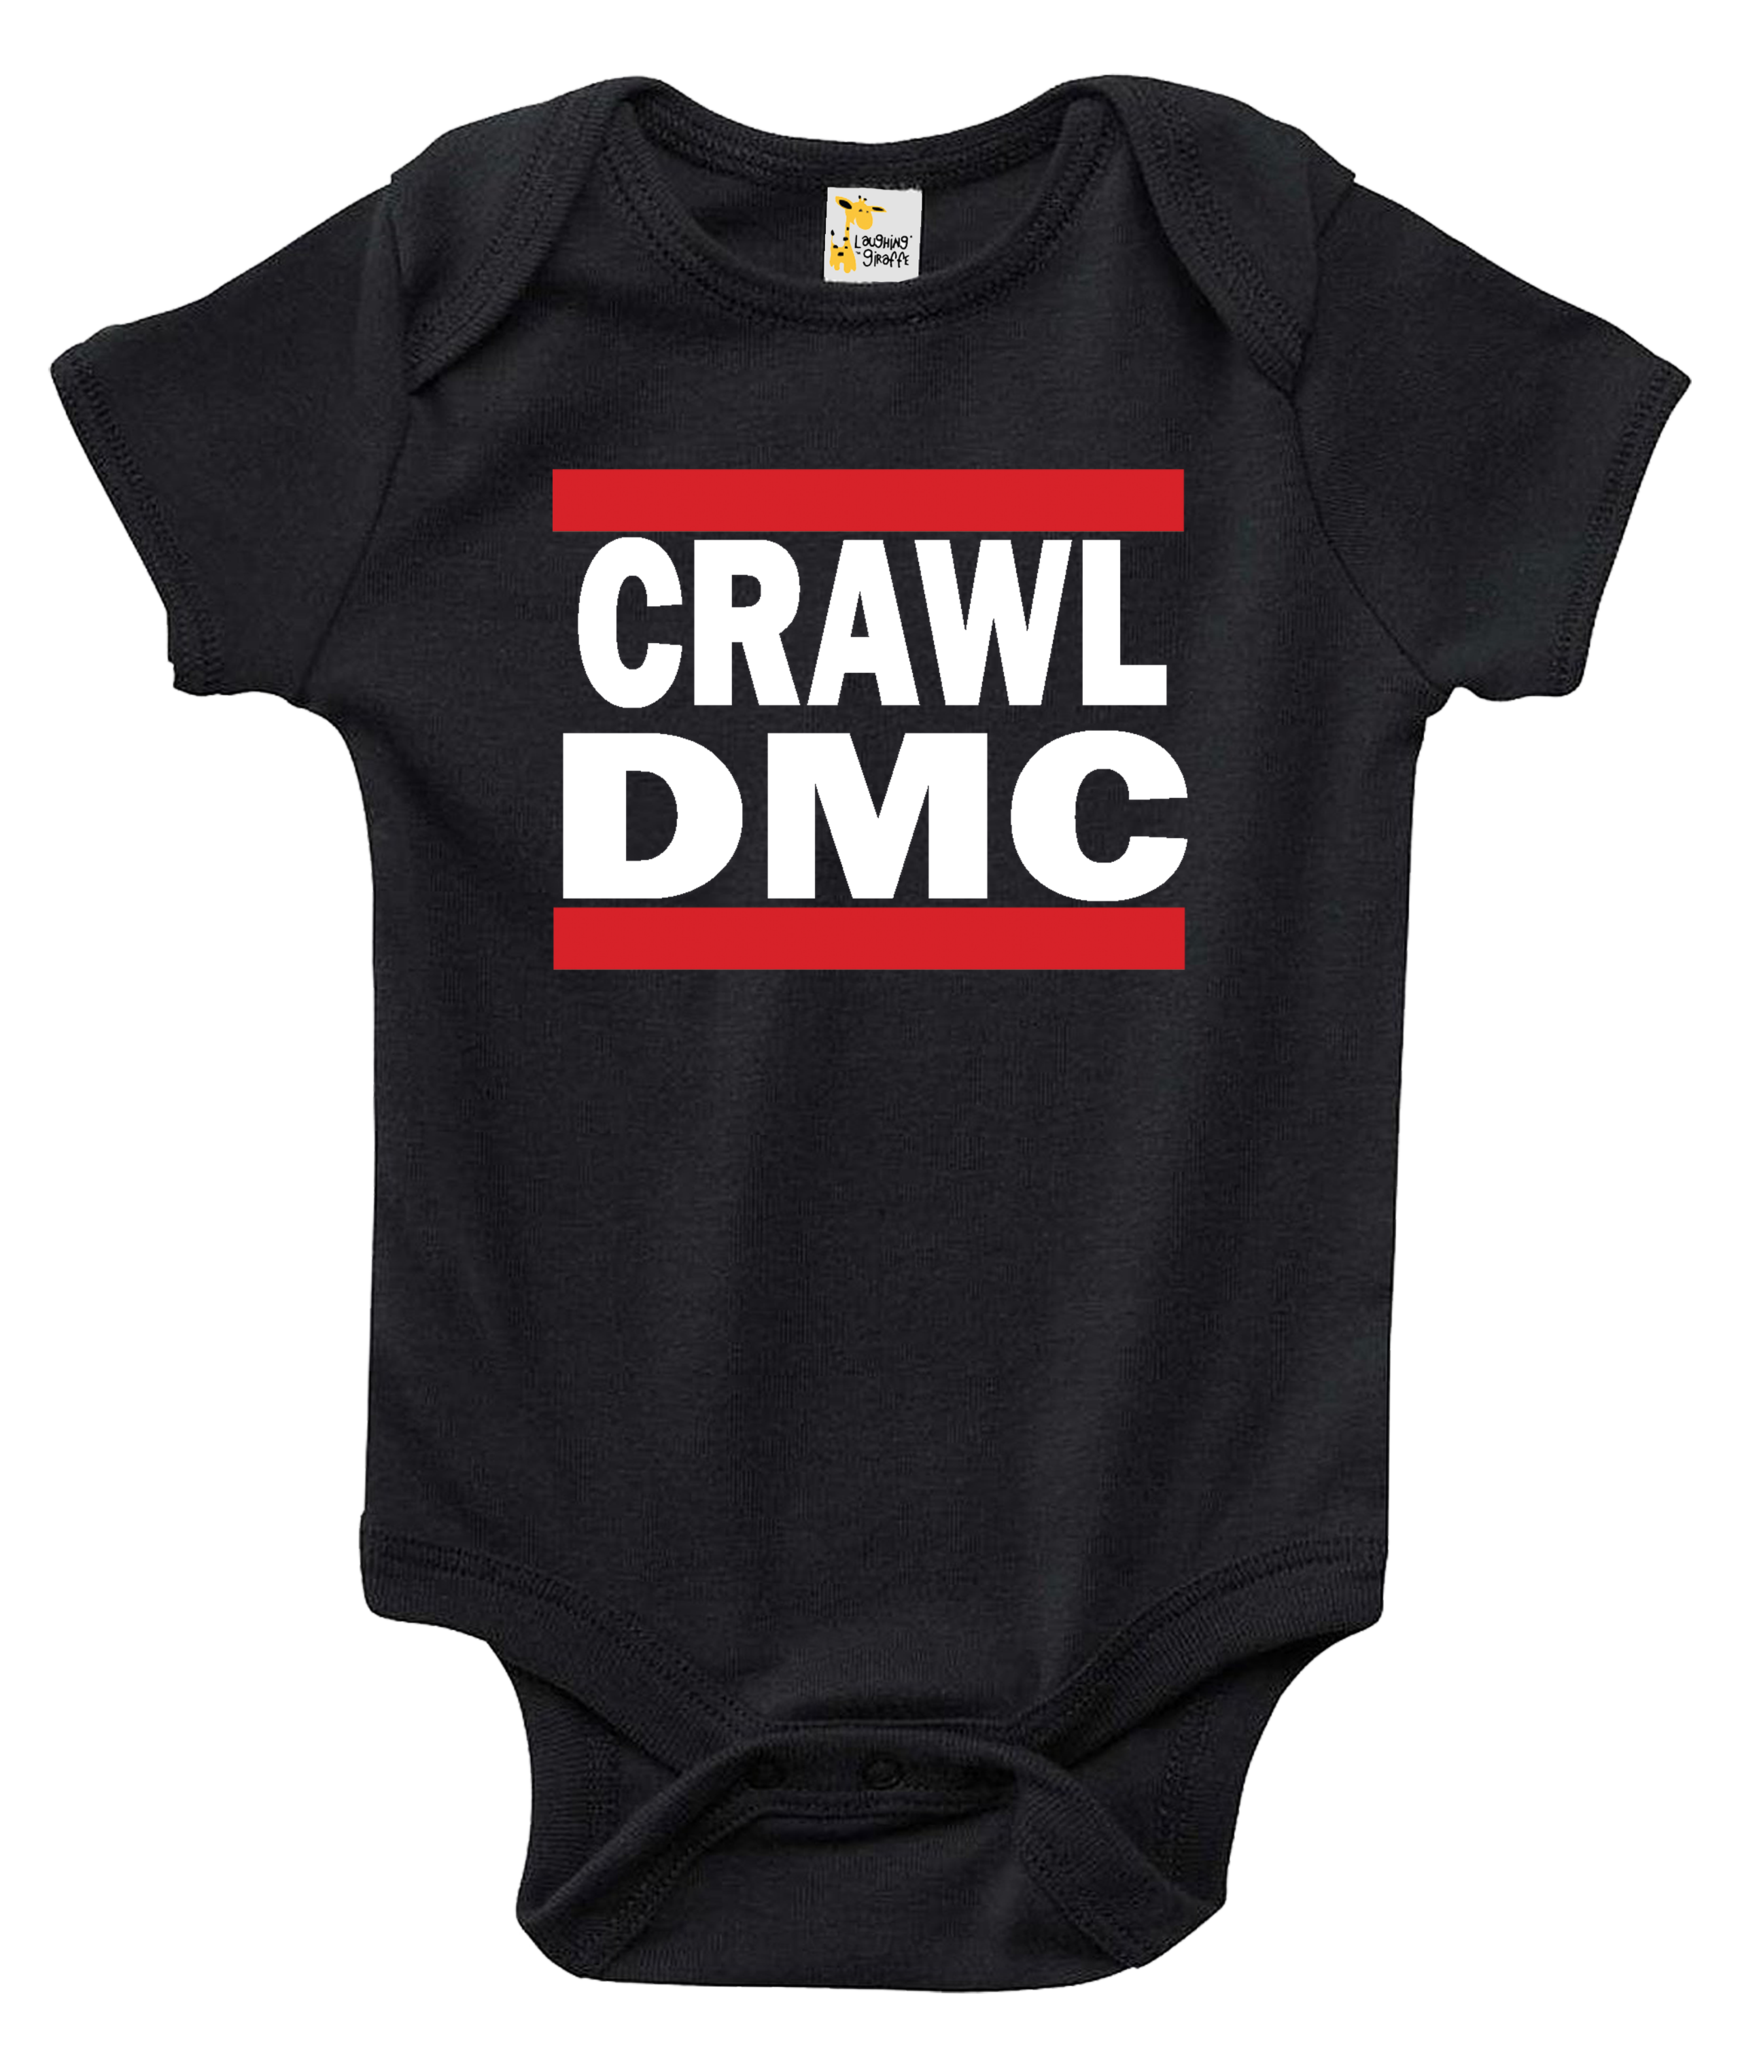 Crawl DMC One-piece Baby Bodysuit